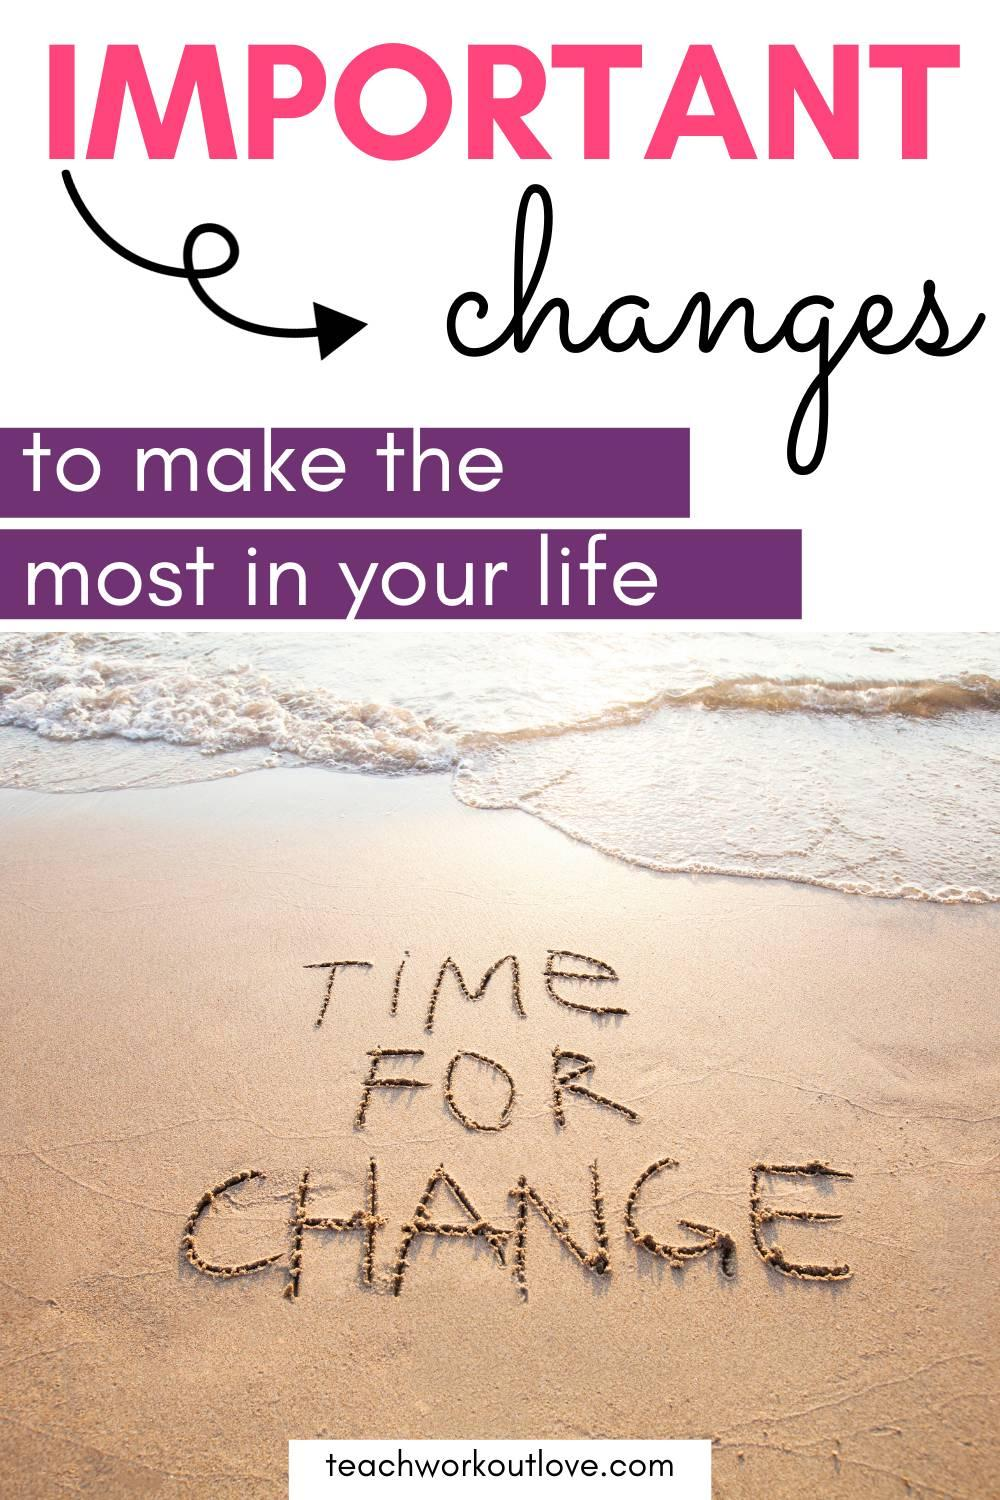 It is important to think about some of the best ways of being able to change your life and take positive steps in the right direction this year.